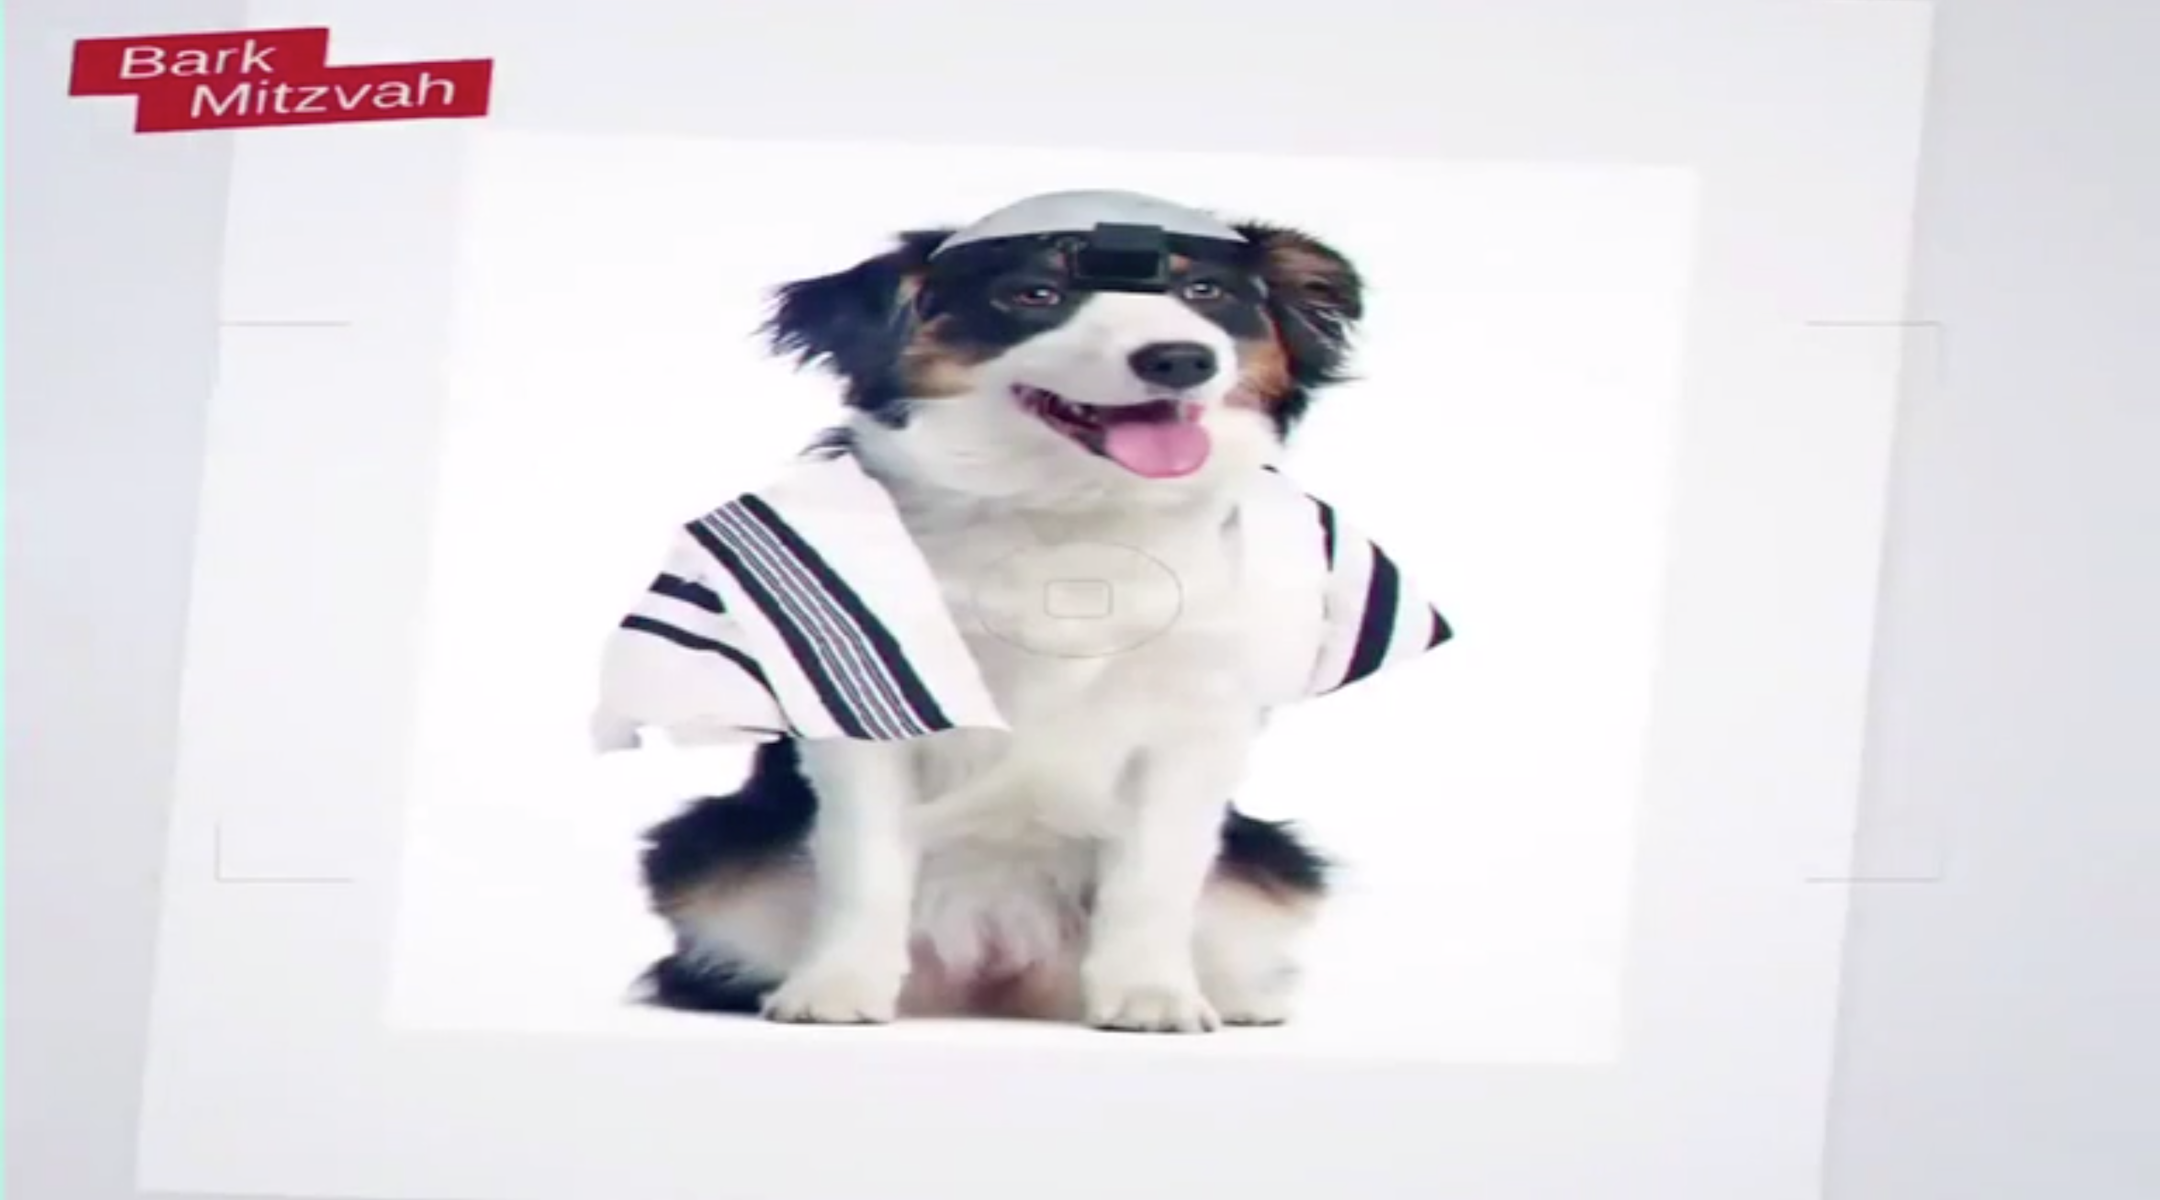 A frame from a United Torah Judaism ad that appeared to compare Reform Jewish converts to dogs. (Screen shot)